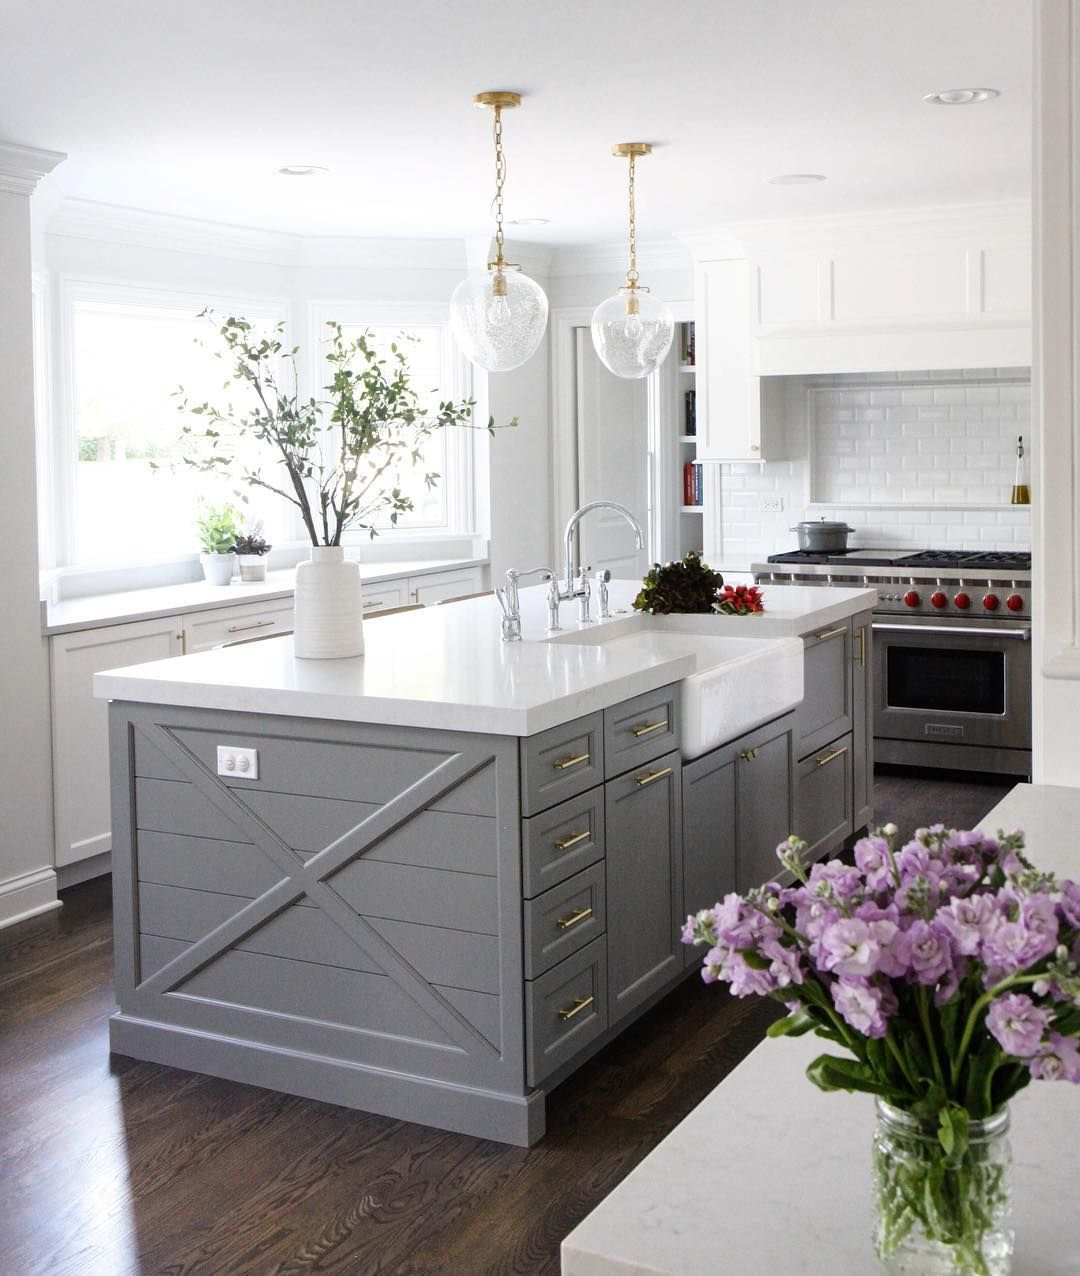 Kitchen island paint color is Chelsea Gray Benjamin Moore. via Park on grey interior design paint ideas, grey bathroom paint ideas, grey sofa paint ideas, grey wood paint ideas,